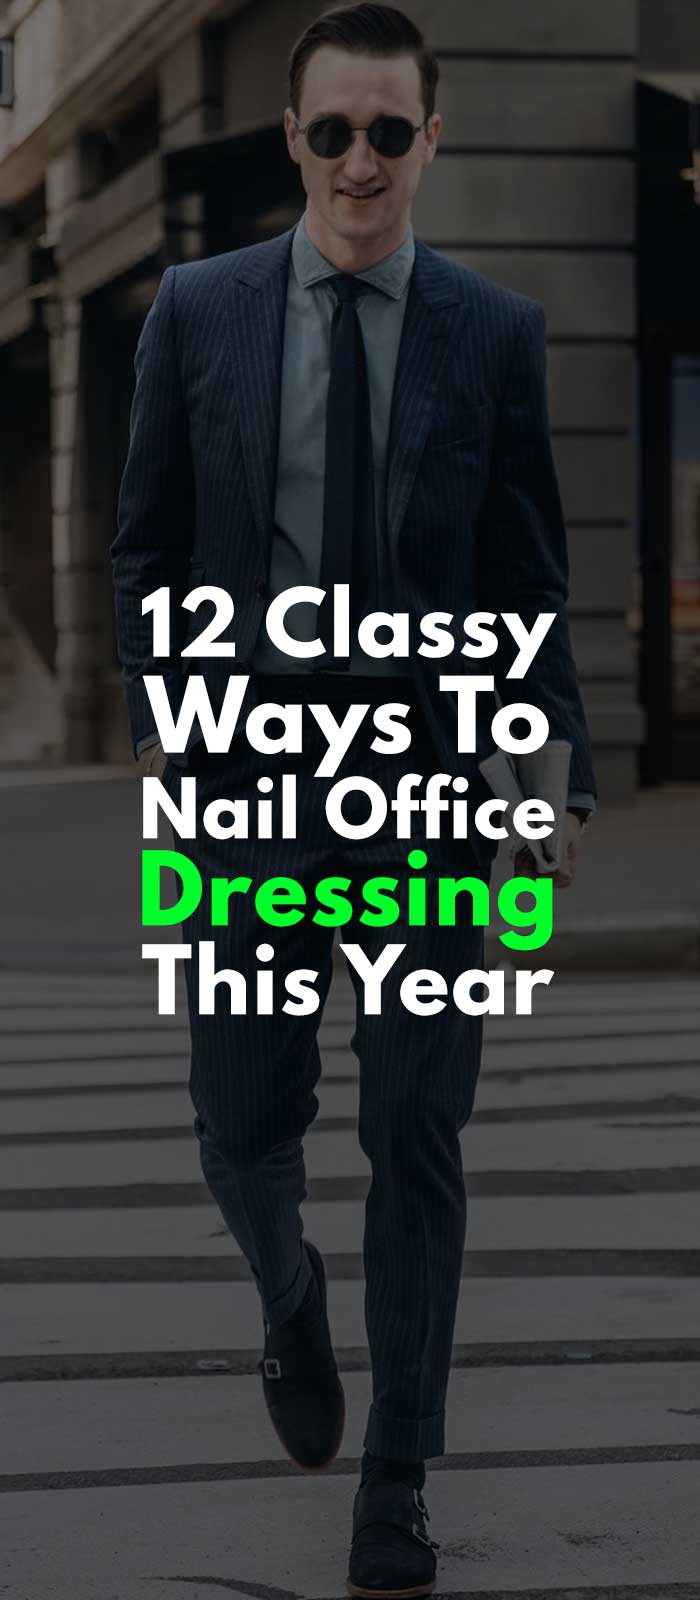 12 Classy Ways To Nail Office Dressing This Year